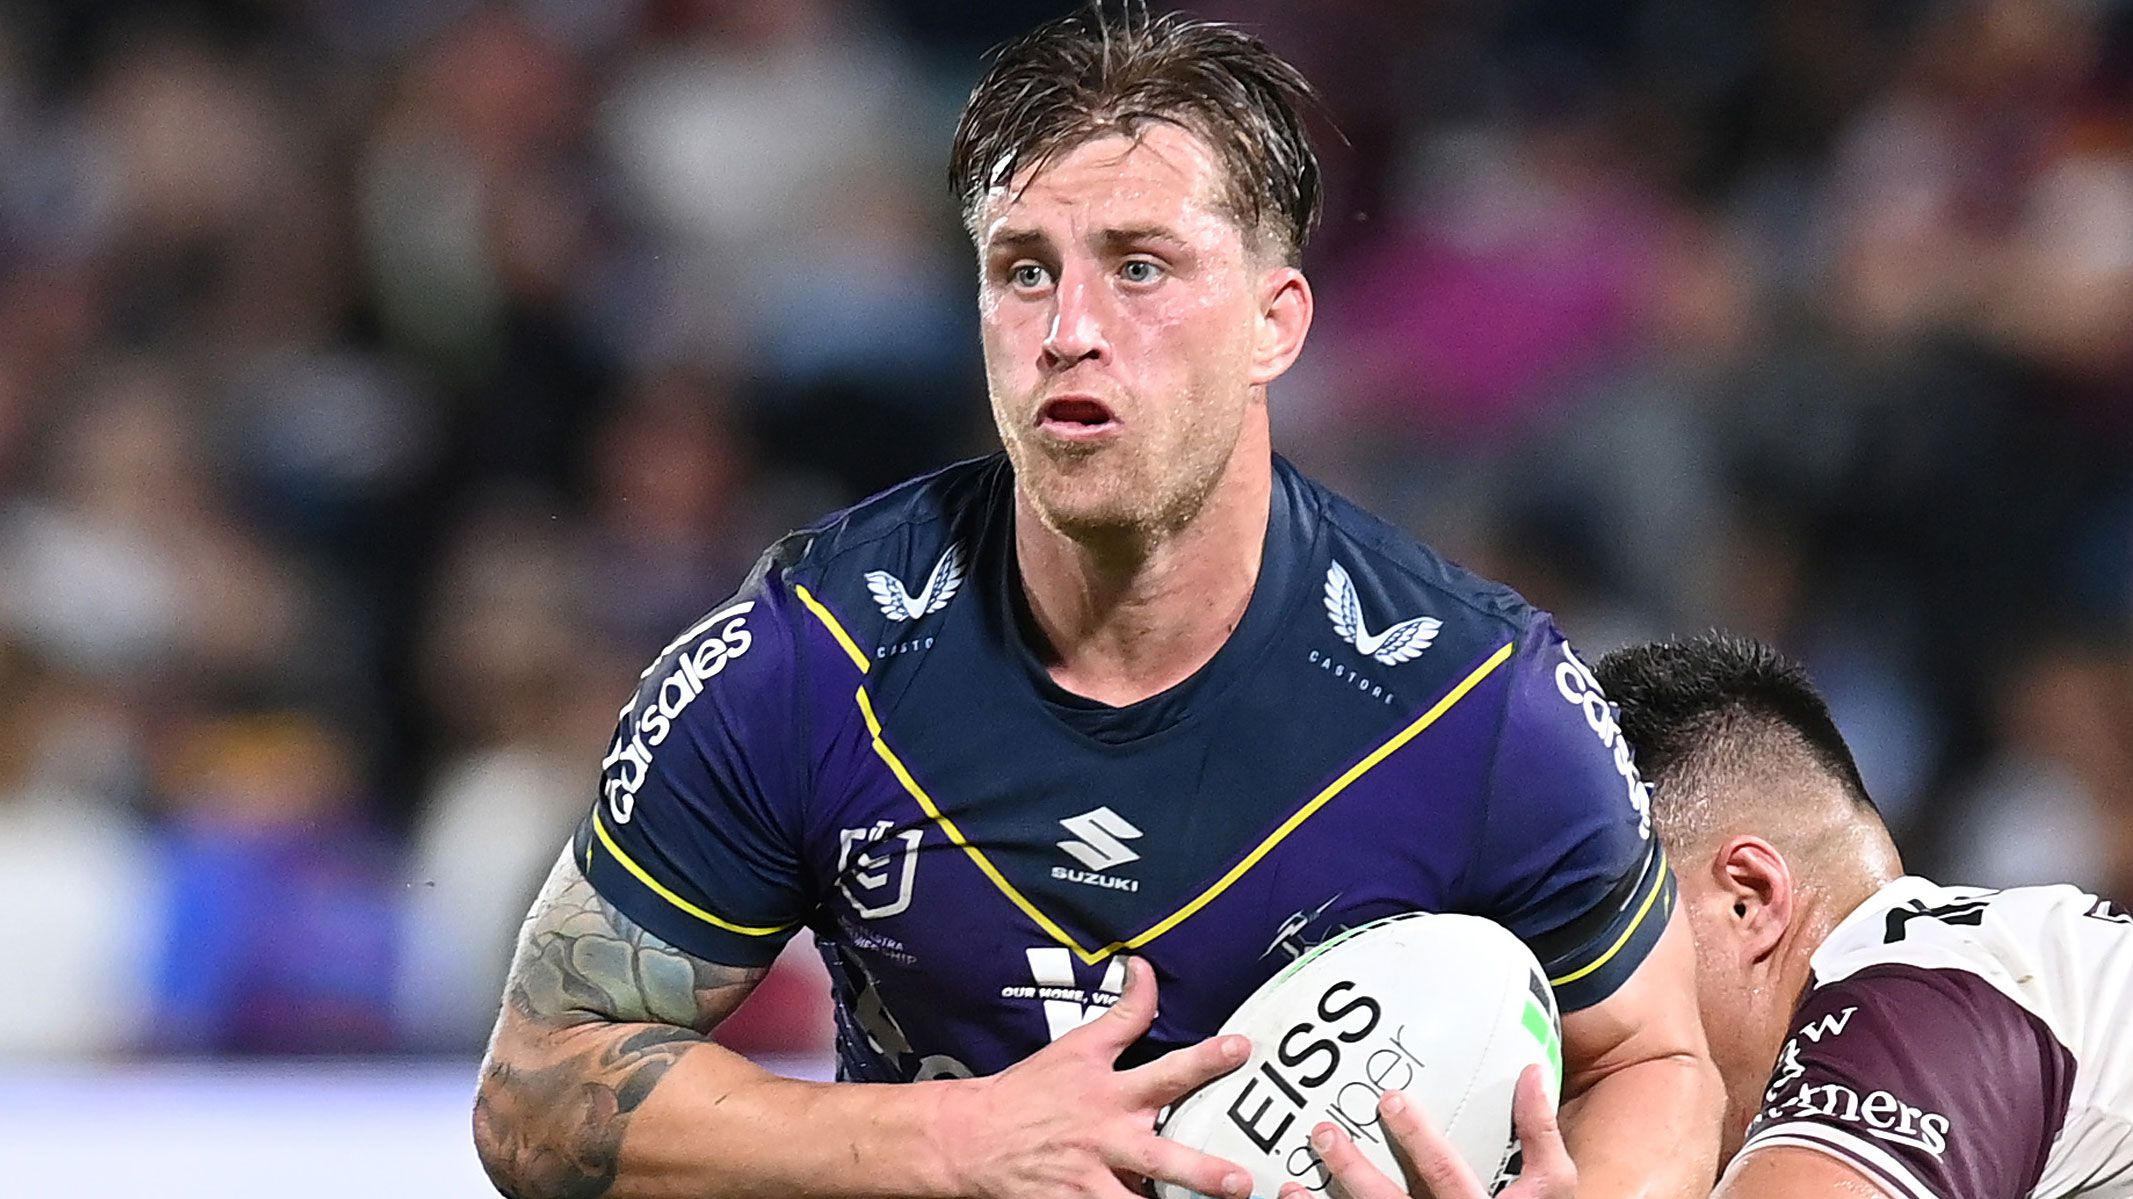 Munster rips Dally M's over outrageous snub